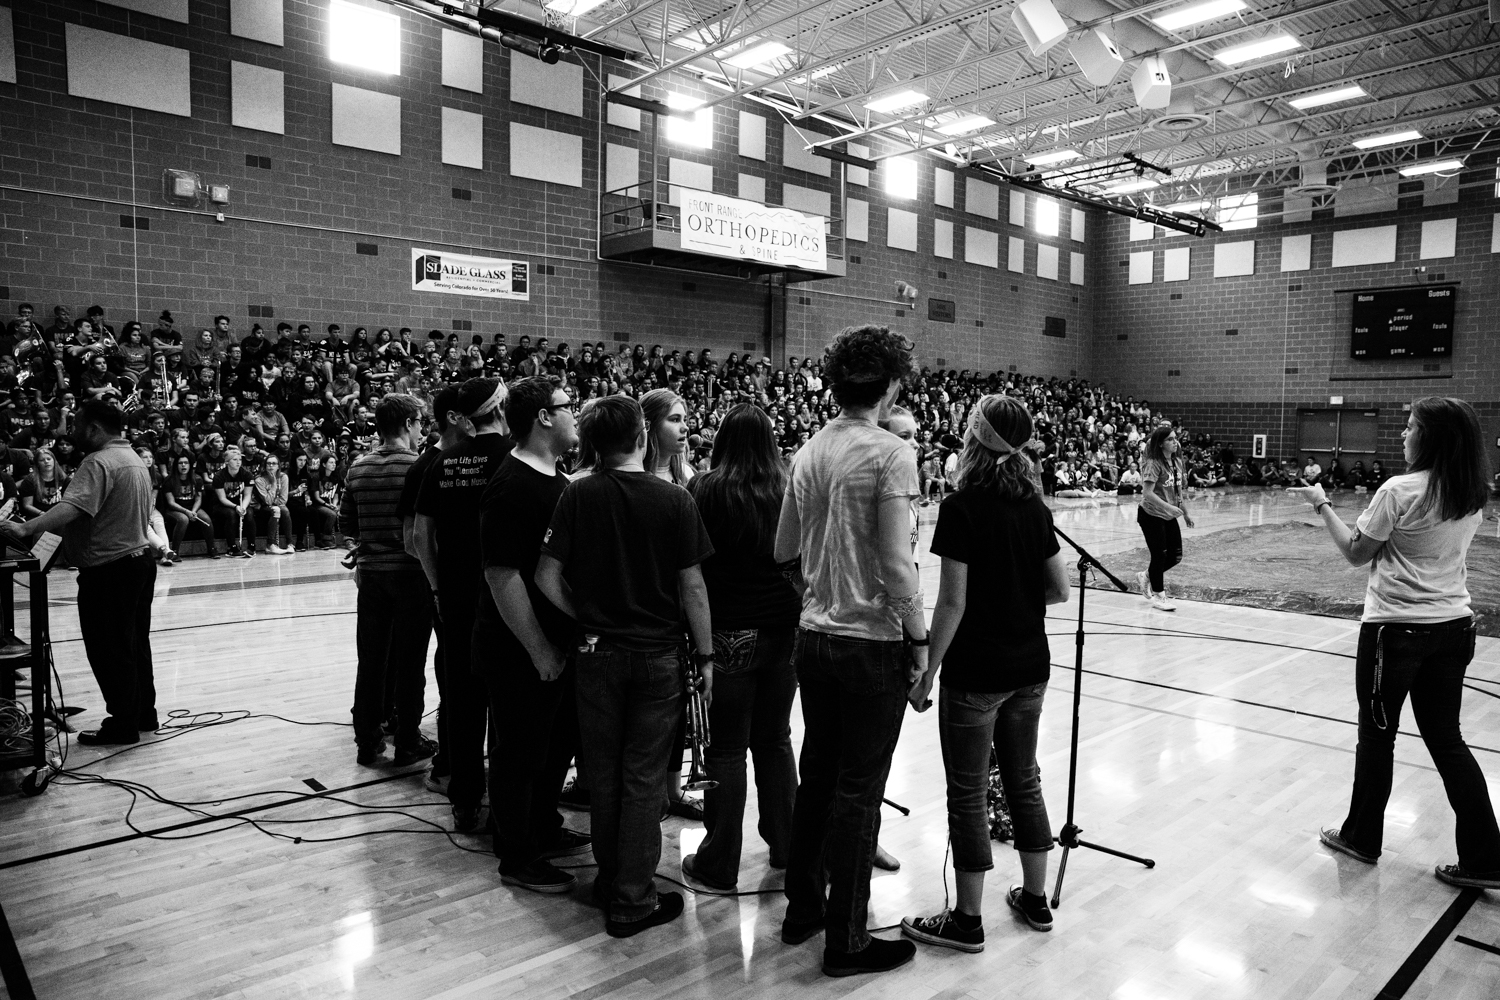 Jazz+Choir+performs+their+second+song+with+the+Jazz+band+in+front+of+the+student+body.++